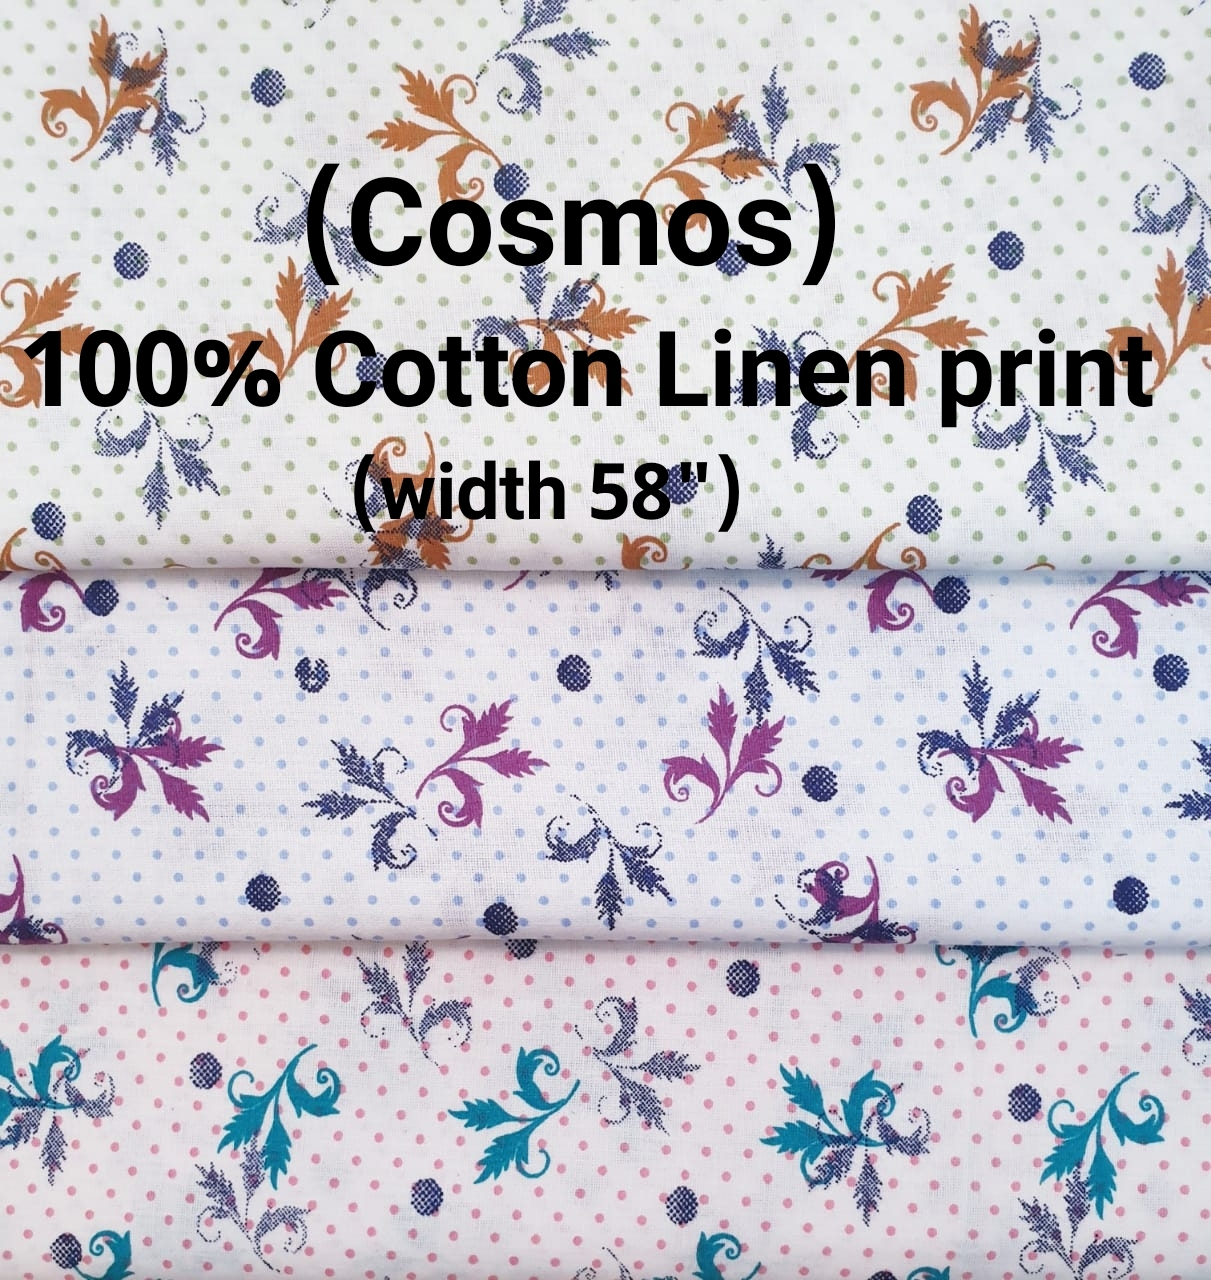 COSMOS 100% cotton linen print